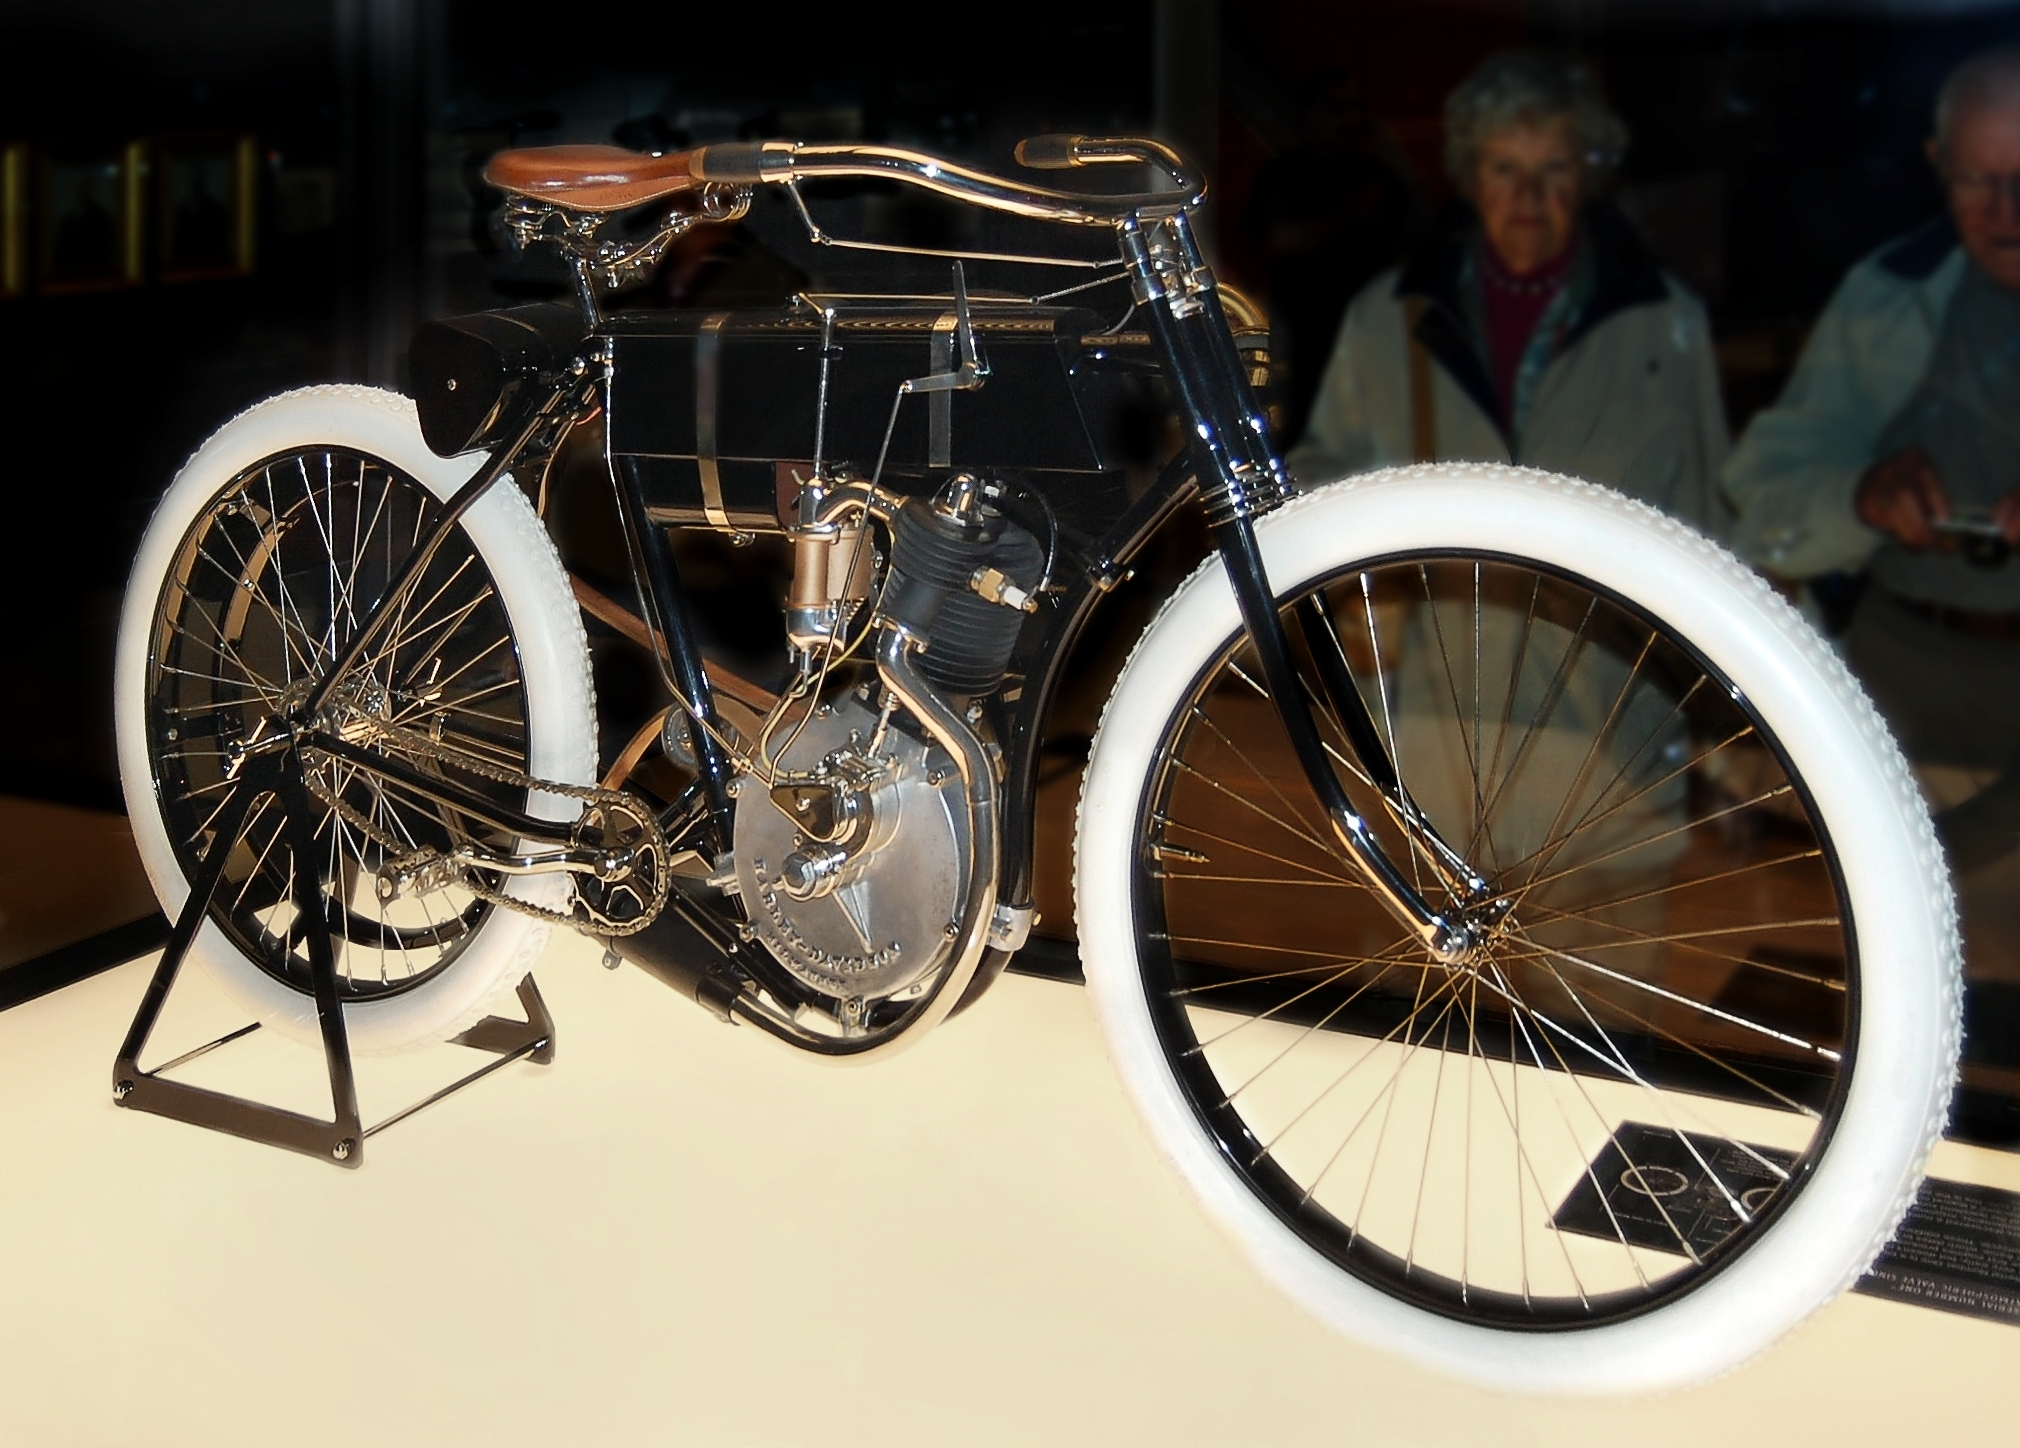 1903 Harley-Davidson | Serial Number 1